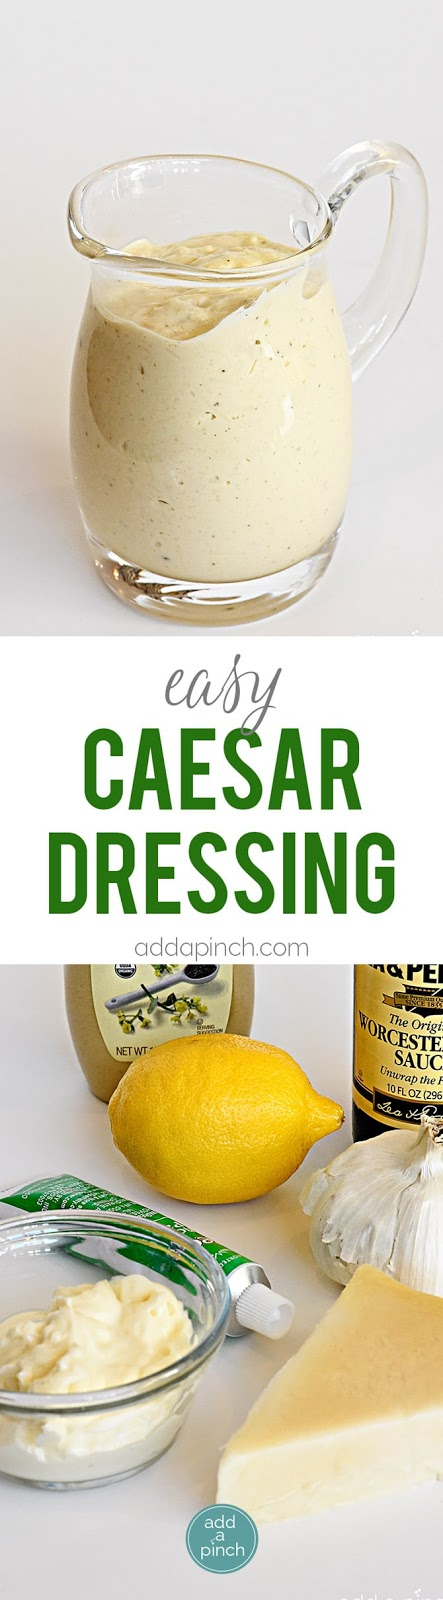 Easy Caesar Dressing Recipe